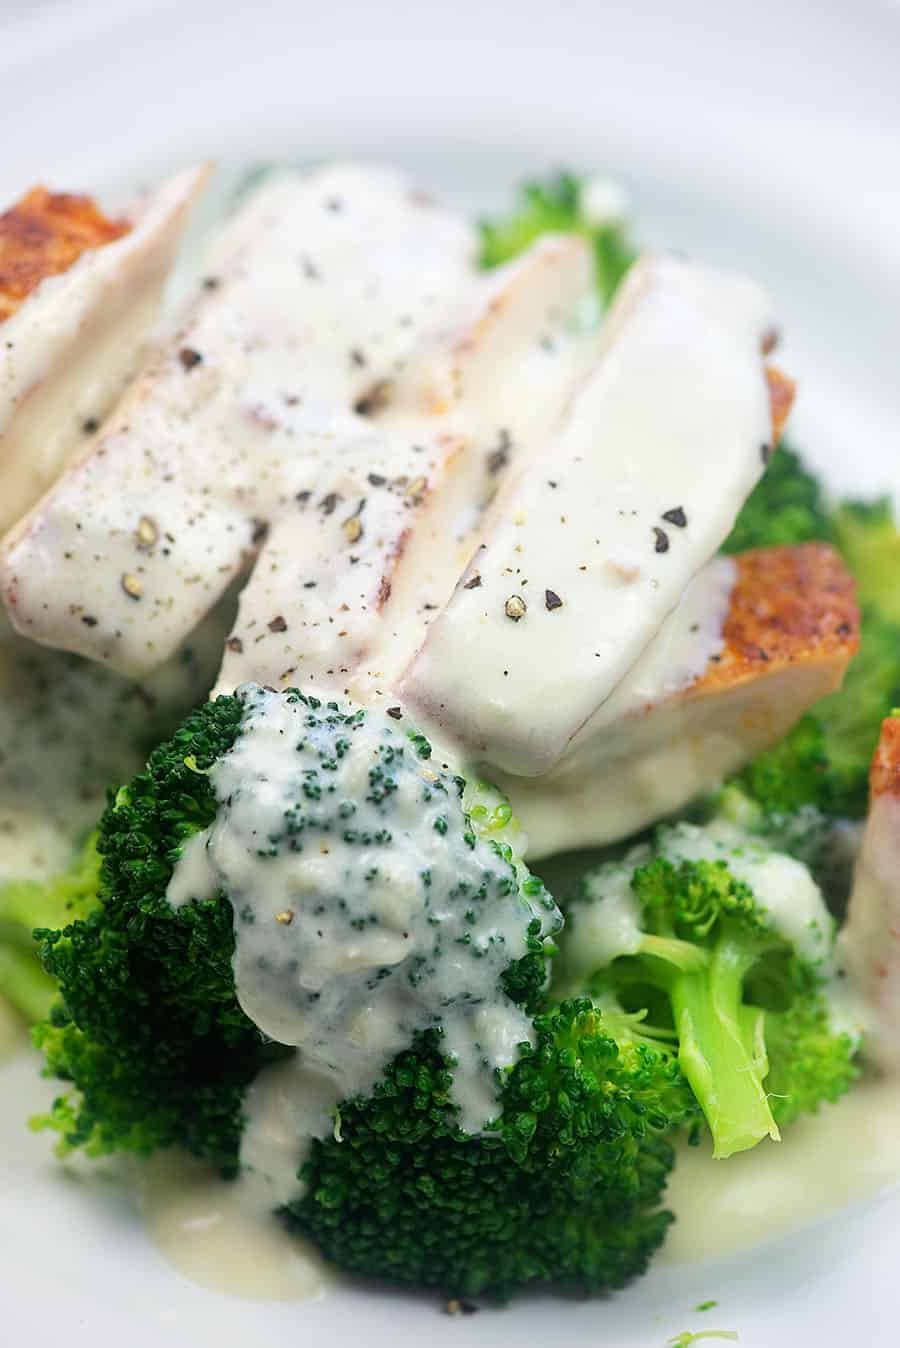 Low carb Alfredo sauce over chicken and broccoli! Bet you don't even miss the pasta! #lowcarb #keto #alfredo